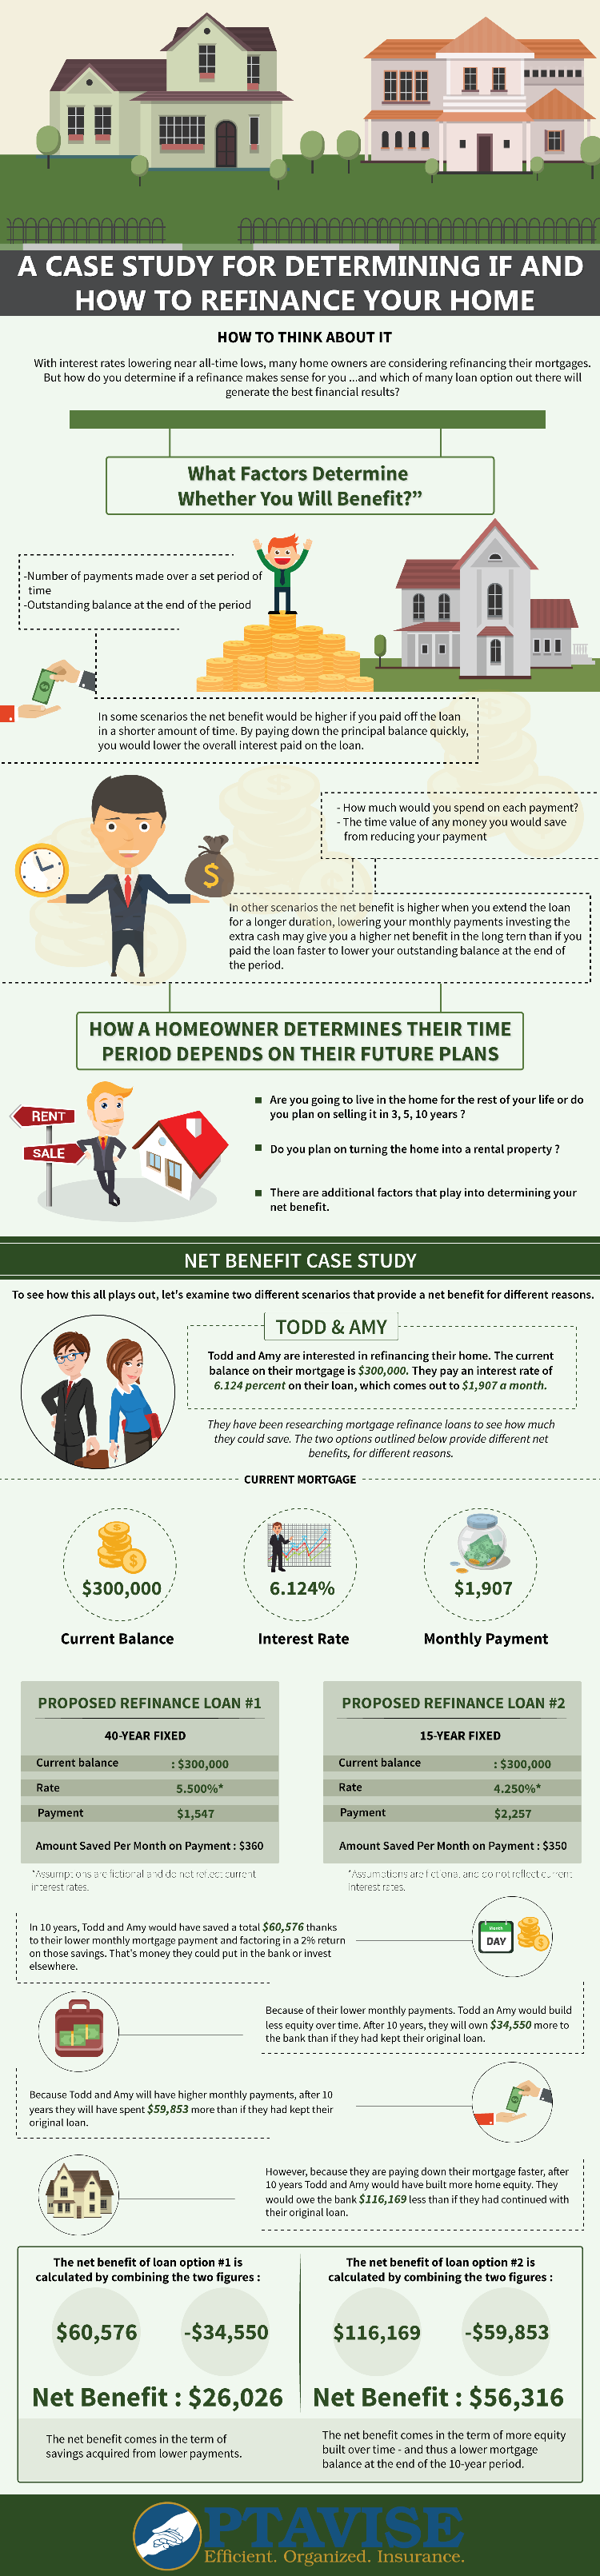 A Case Study For Determining If And How To Refinance Your Home